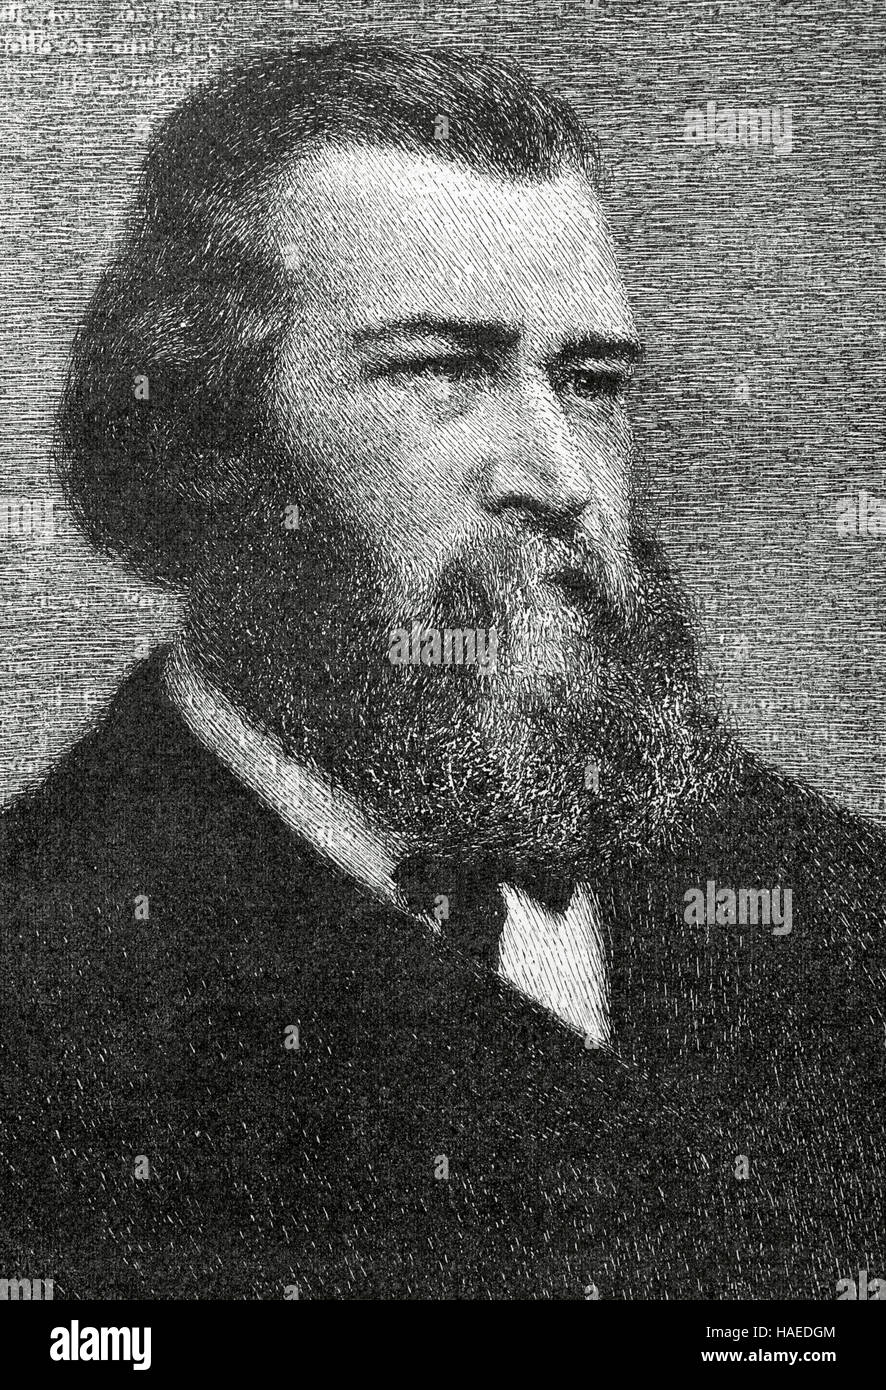 Jean-François Millet (1814-1875). French painter. One of the founders of the Barbizon school. Portrait. Engraving. - Stock Image